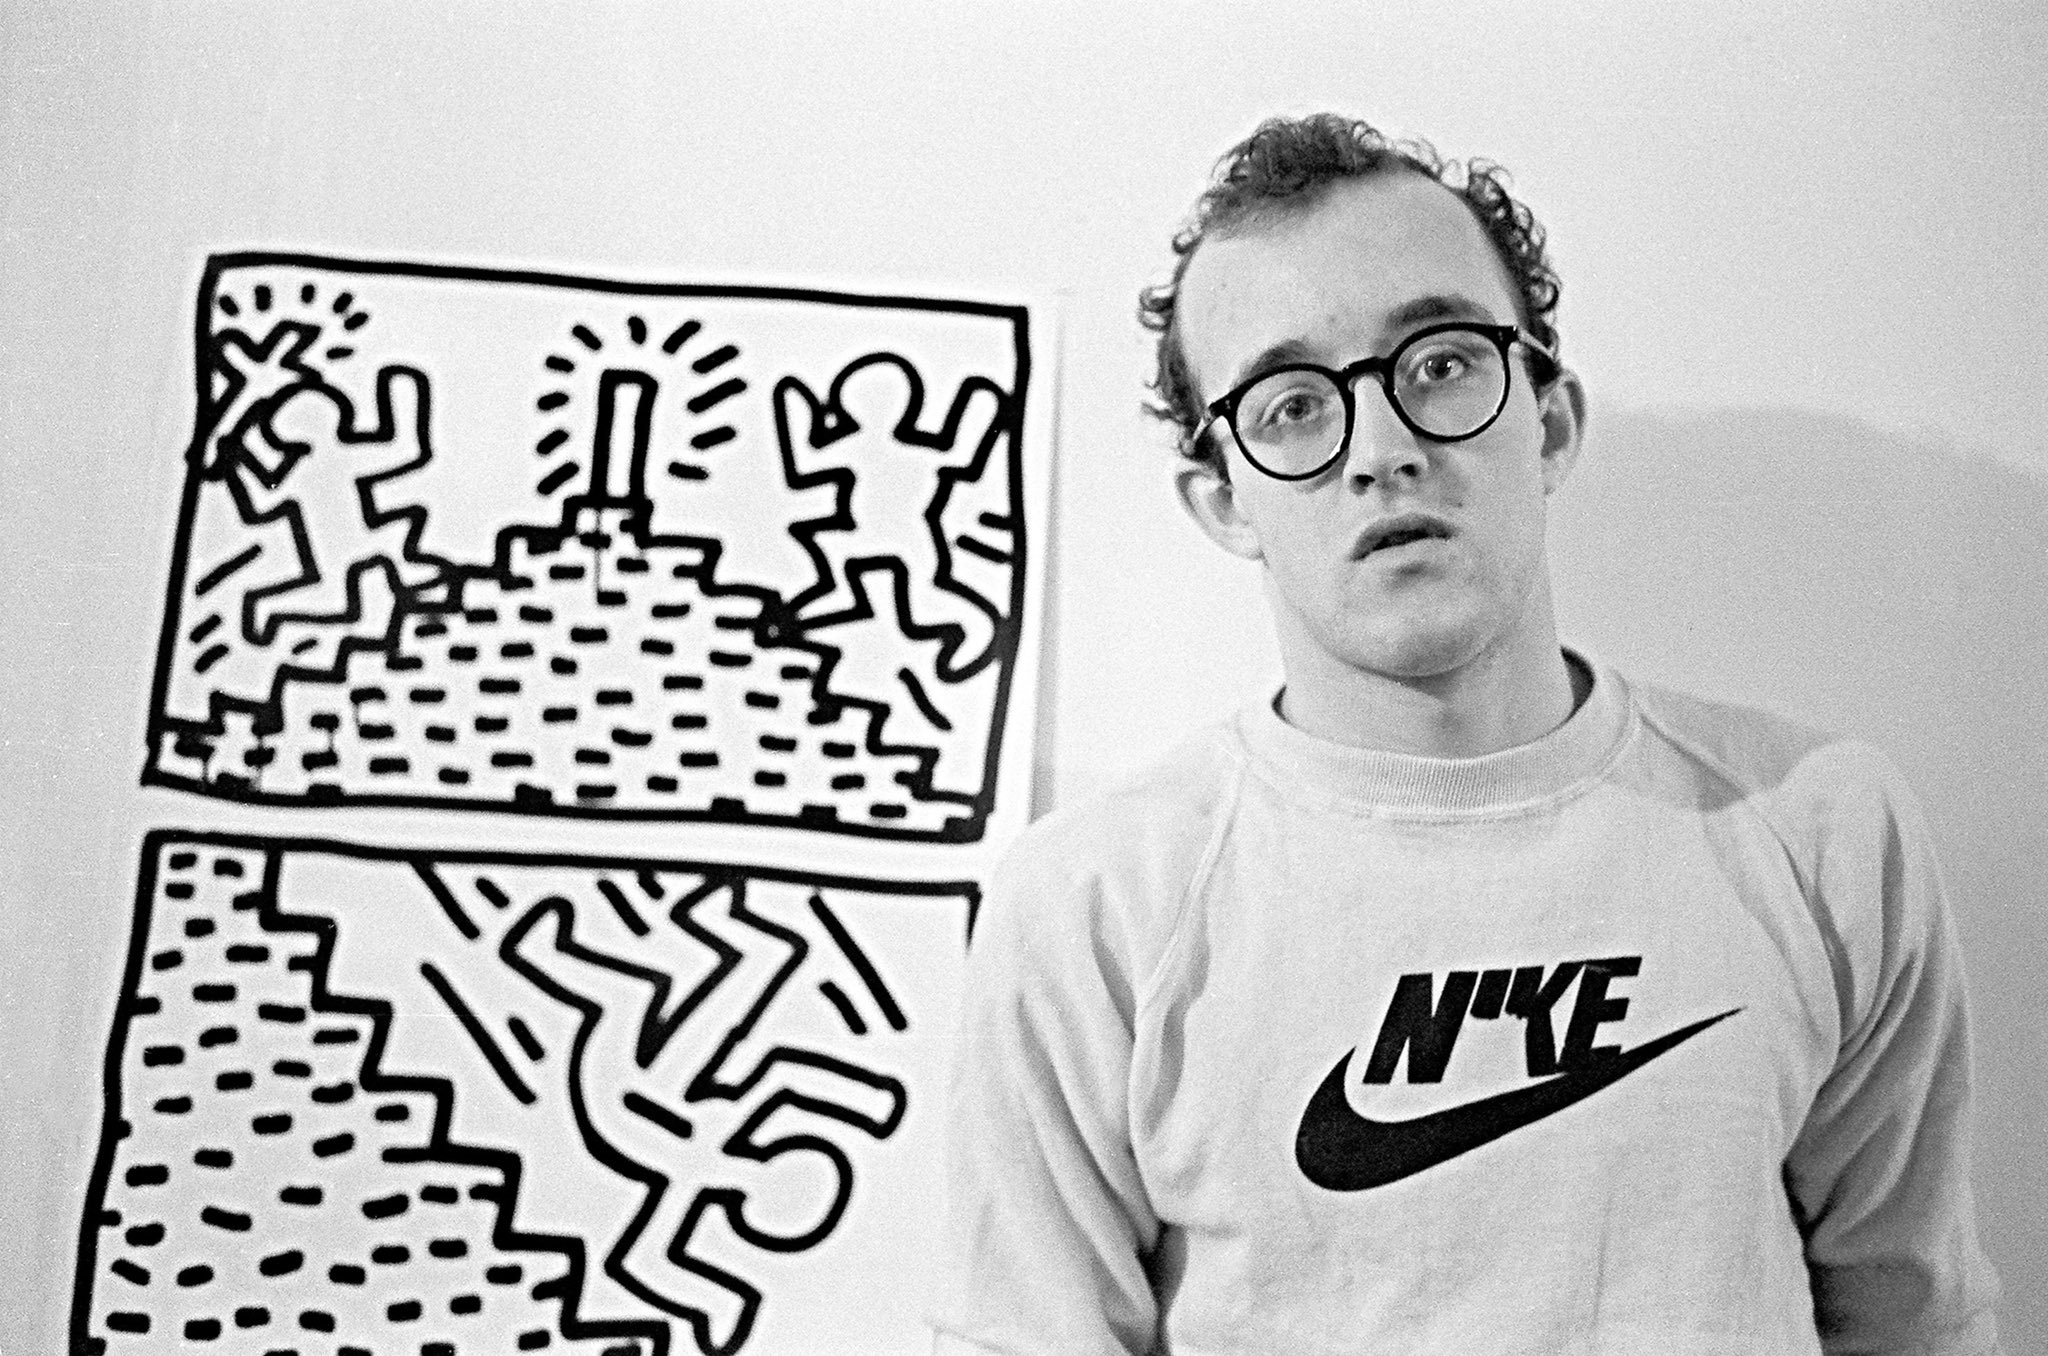 Happy birthday, Keith Haring. You should still be here today. Thank you for your art